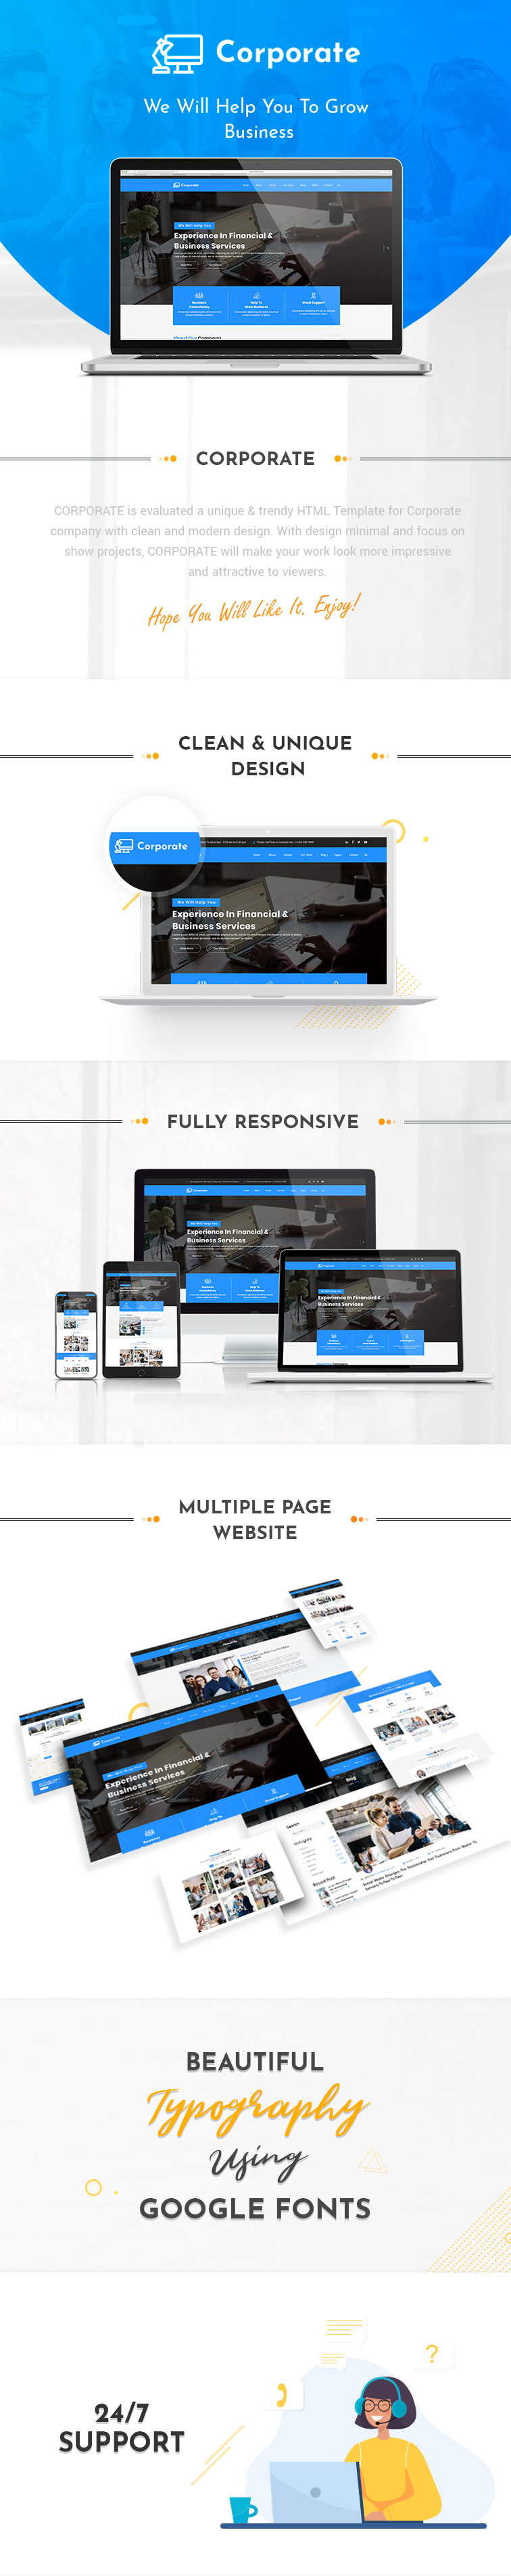 Corporate HTML Templates